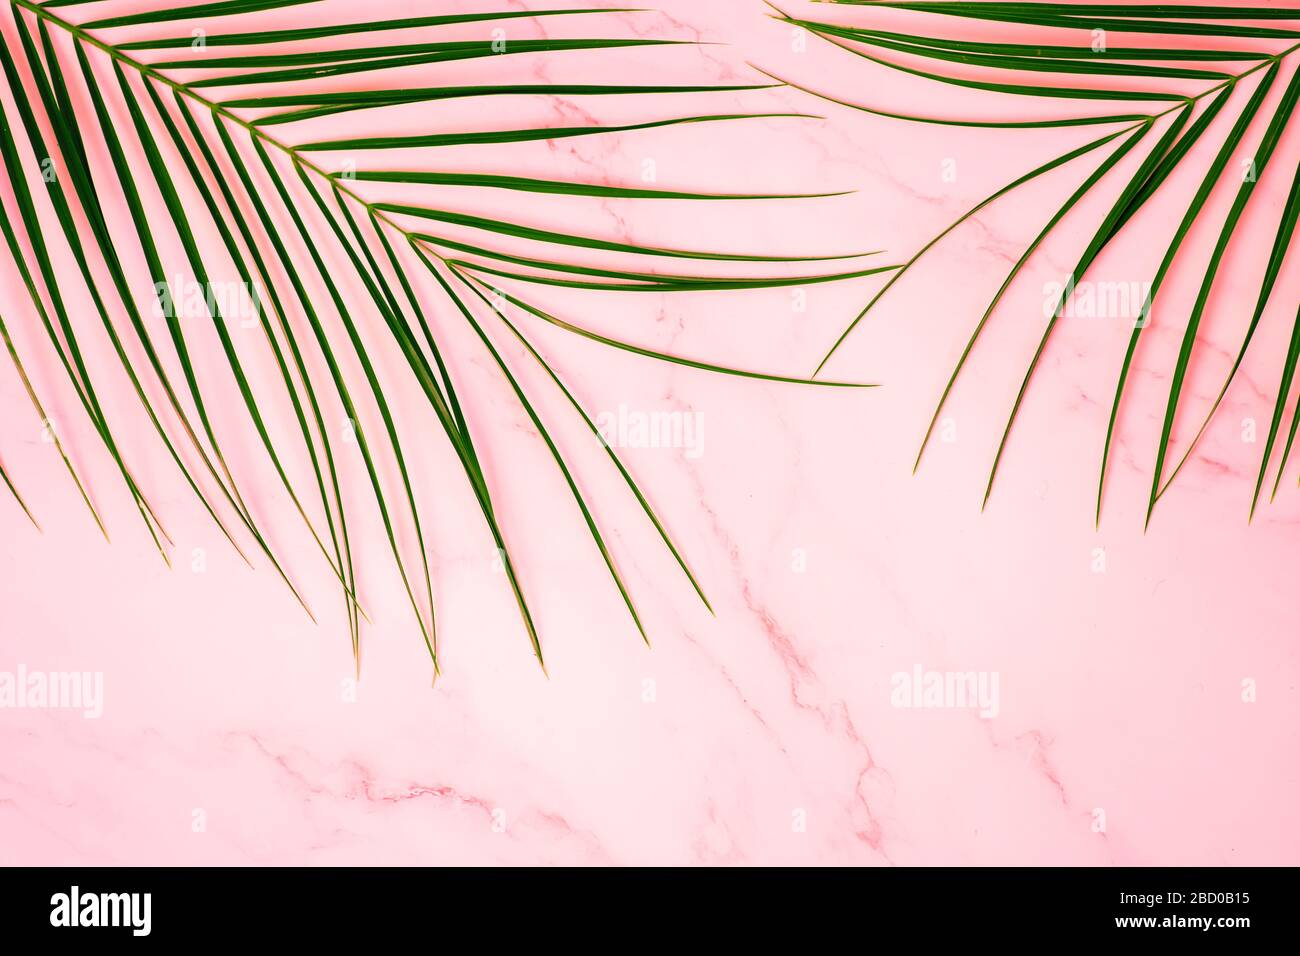 Tropical Green Palm Leaf On Pink Marble Background Flat Lay Top View Copy Space For Your Text Summer Concept Robelini Branch Stock Photo Alamy